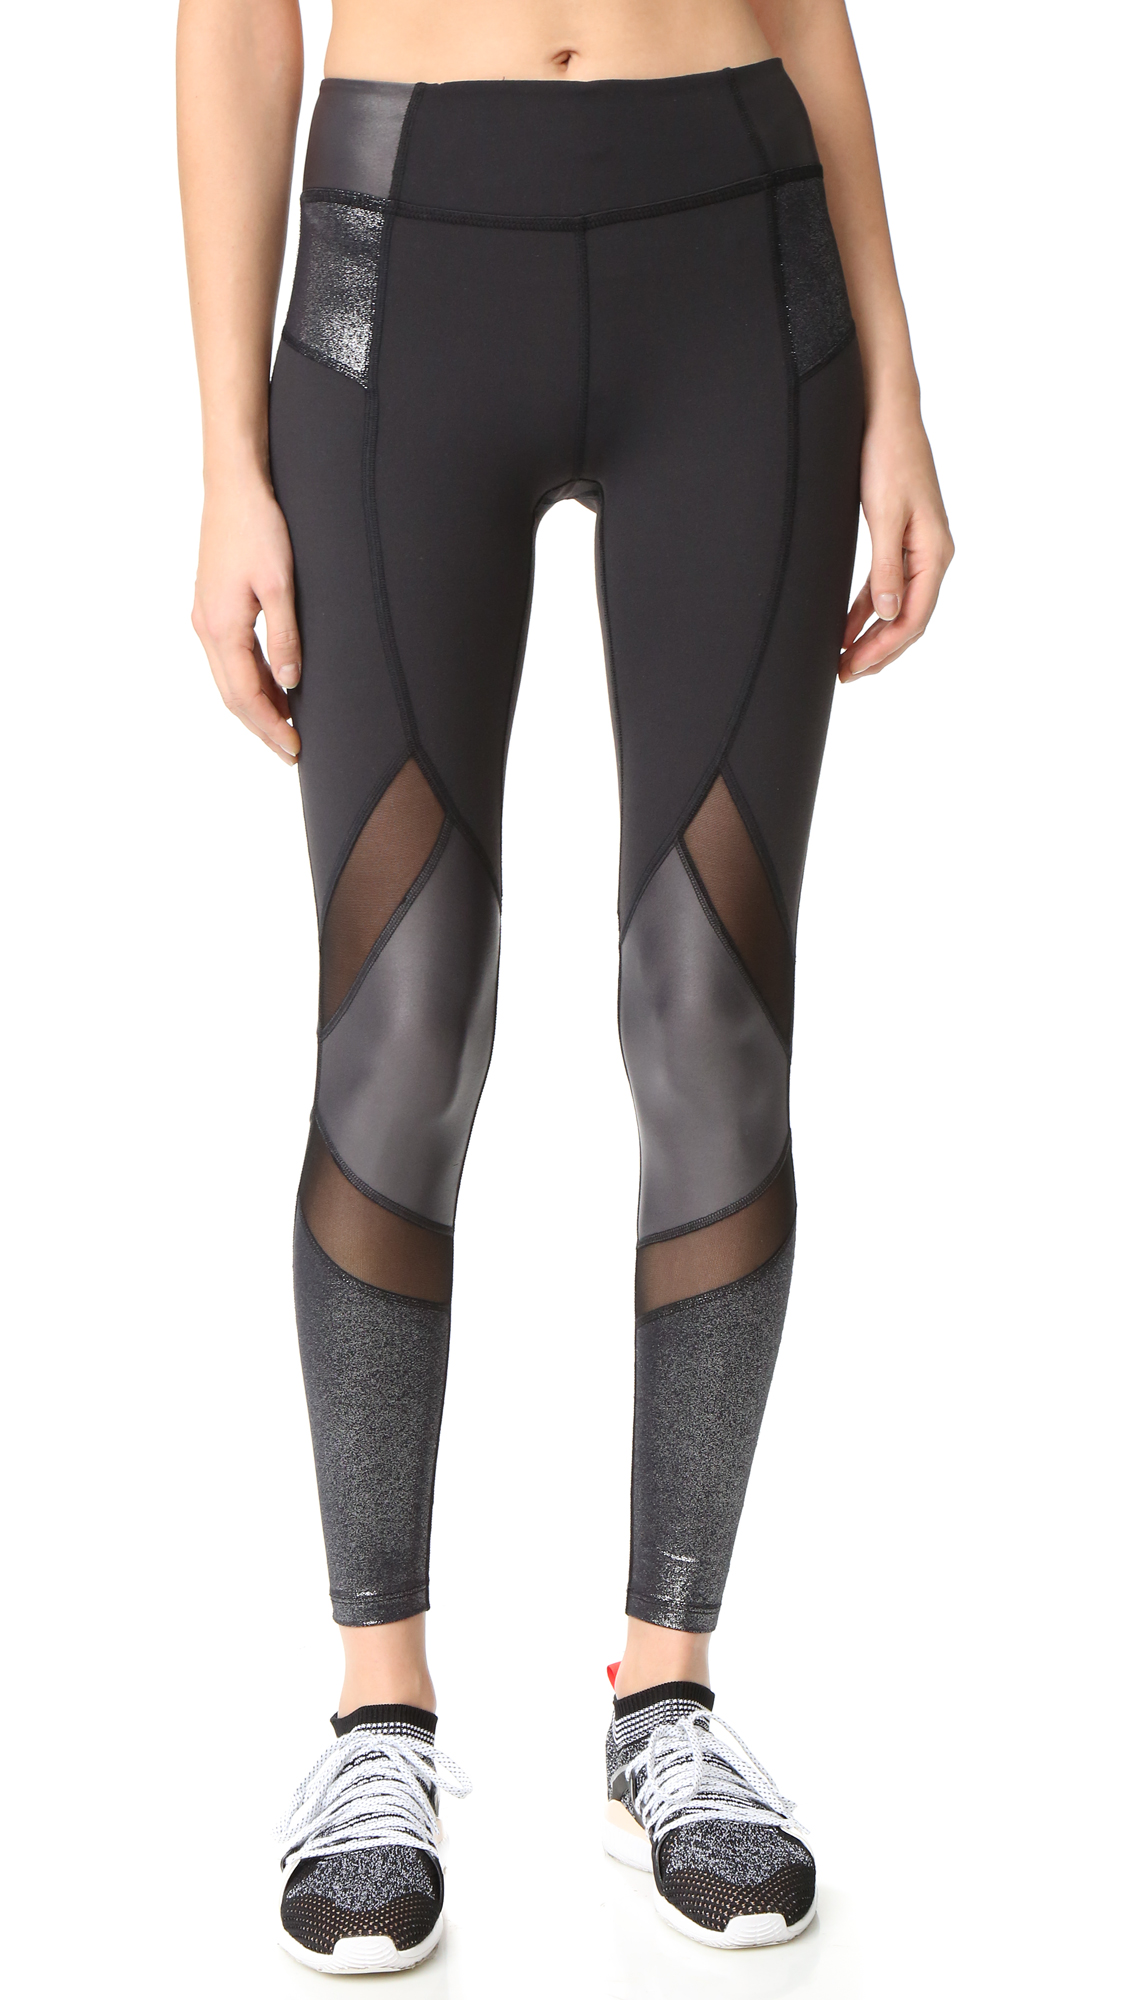 Slinky sections and metallic panels lend an eclectic look to these Beyond Yoga leggings. Fabric: Activewear jersey. 46% nylon/42% polyester/12% elastane. Wash warm. Made in the USA. Imported materials. Measurements Rise: 8.75in / 22cm Inseam: 26.75in / 68cm Measurements